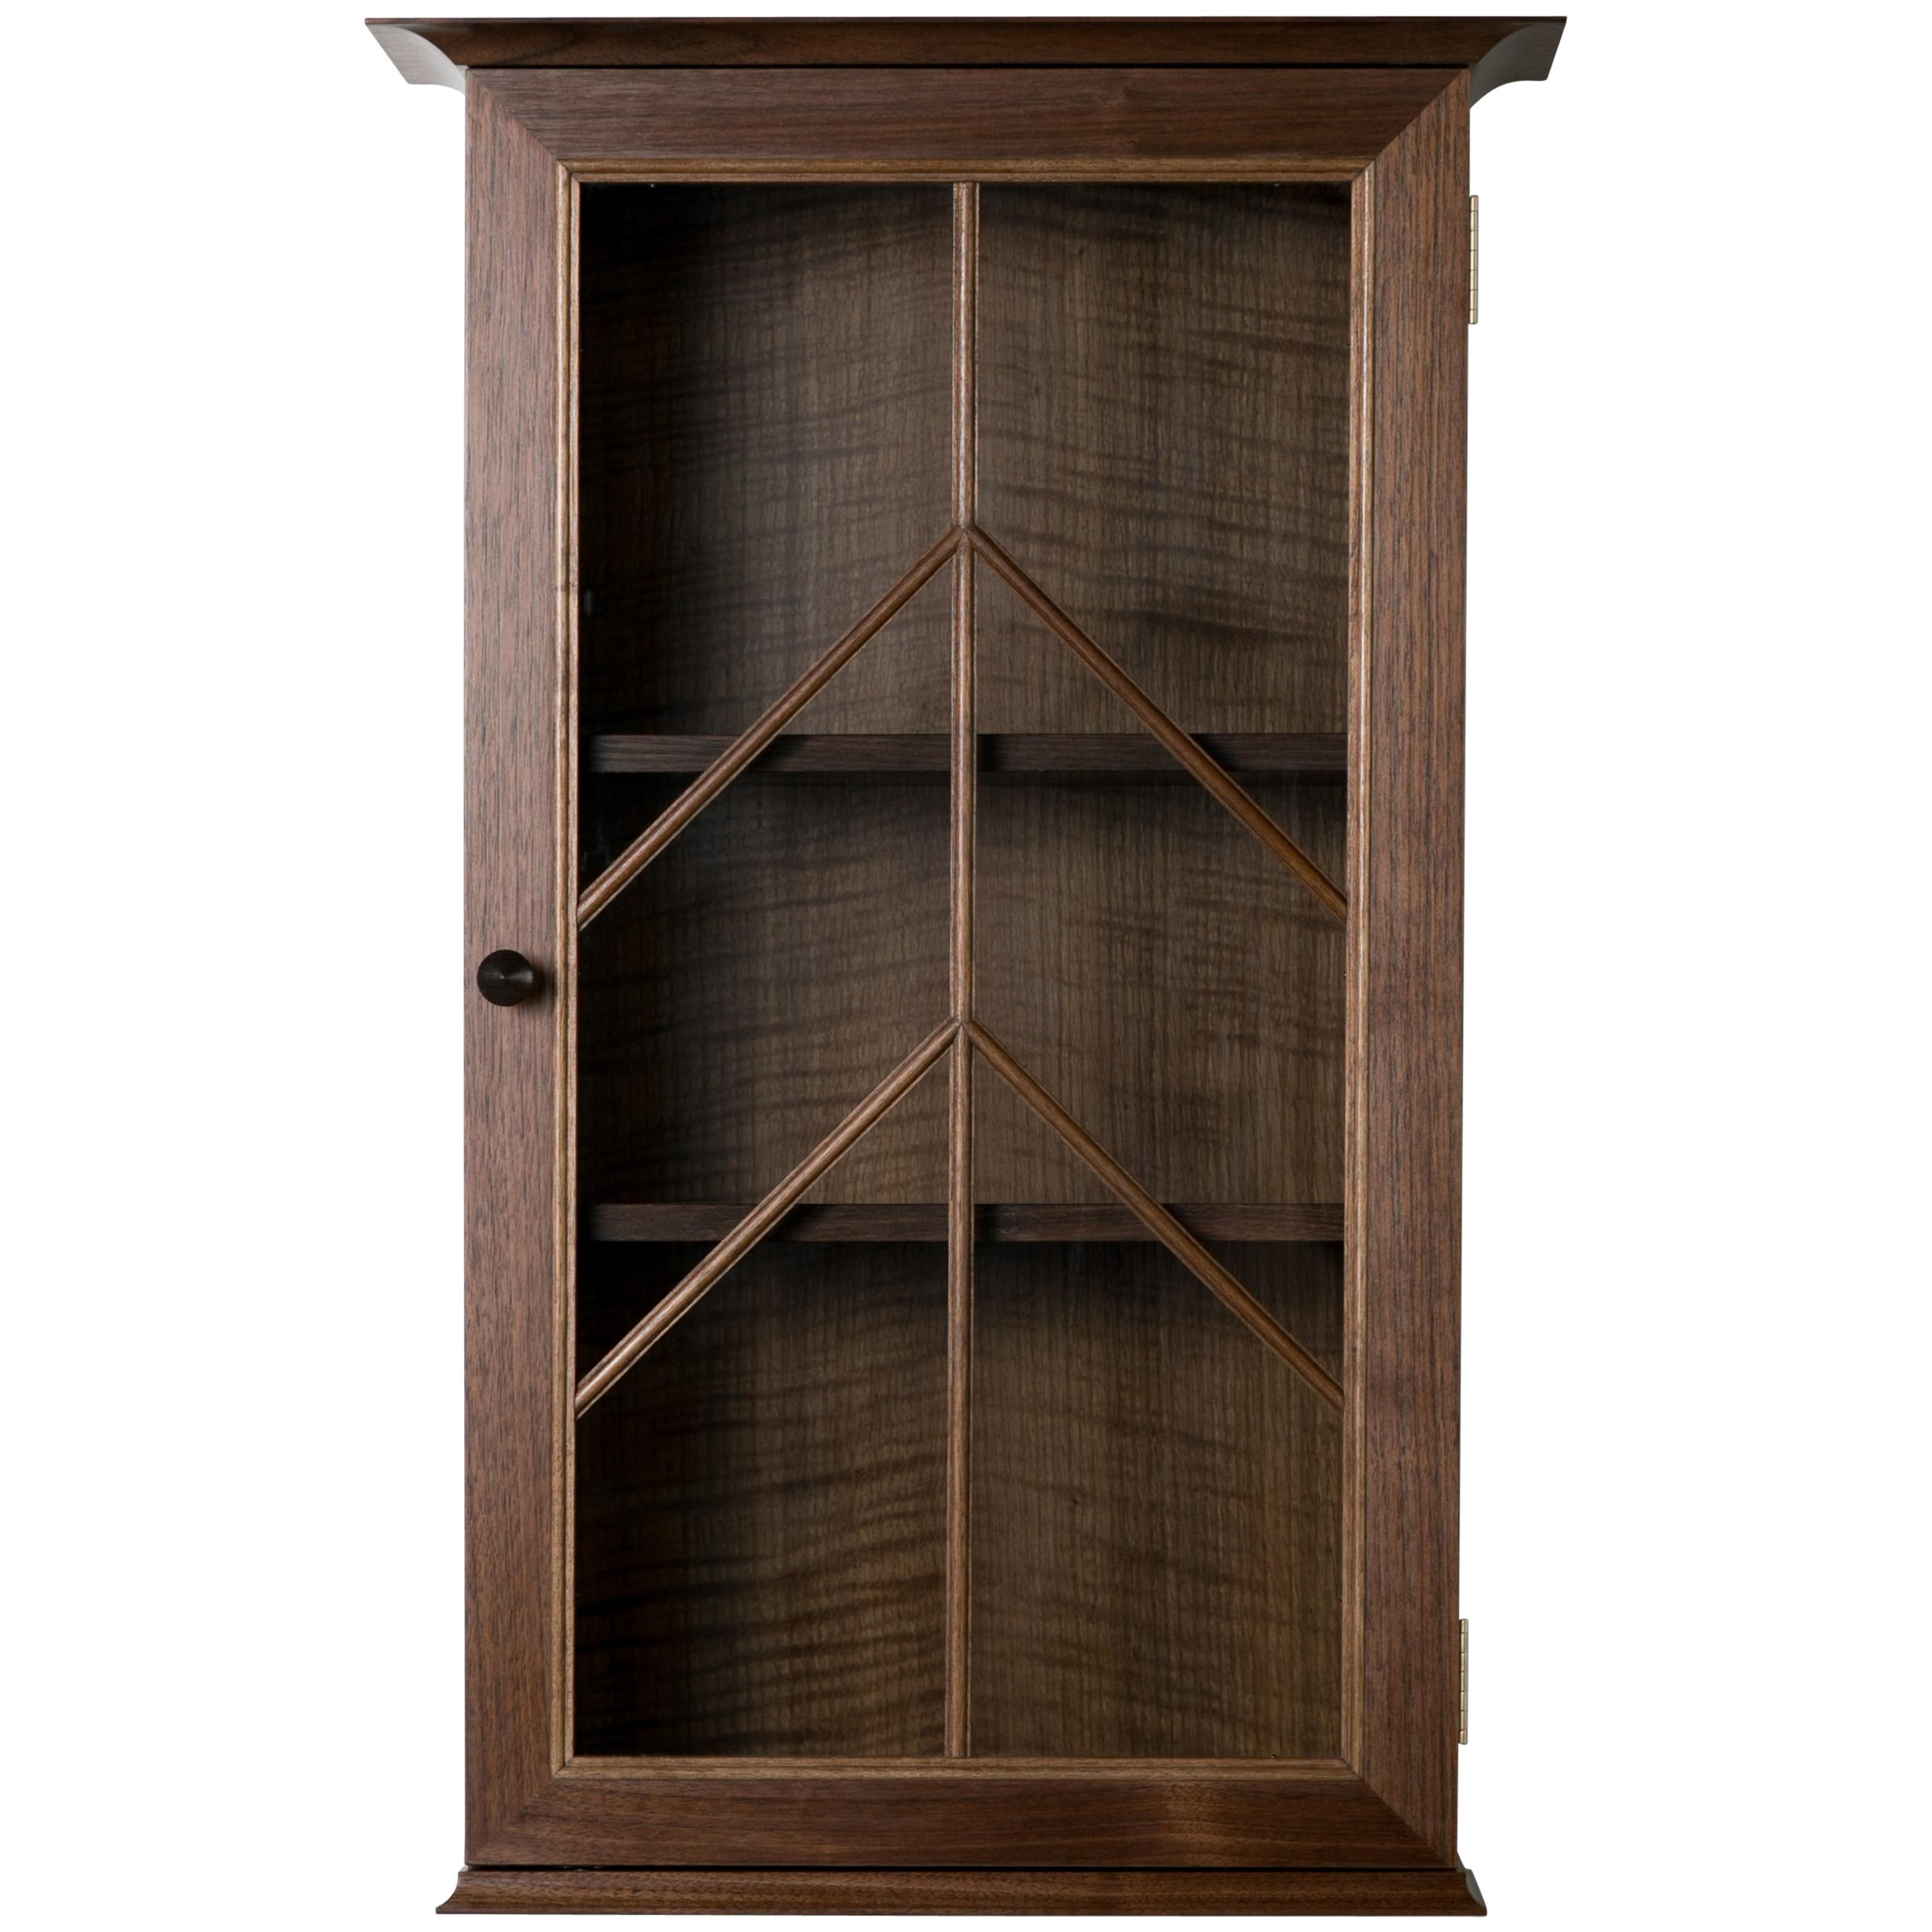 Most Popular Northend Wall Mirrors In Contemporary North End Wall Cabinet In Walnut, Curly Oak With Barred Glass Door (View 17 of 20)